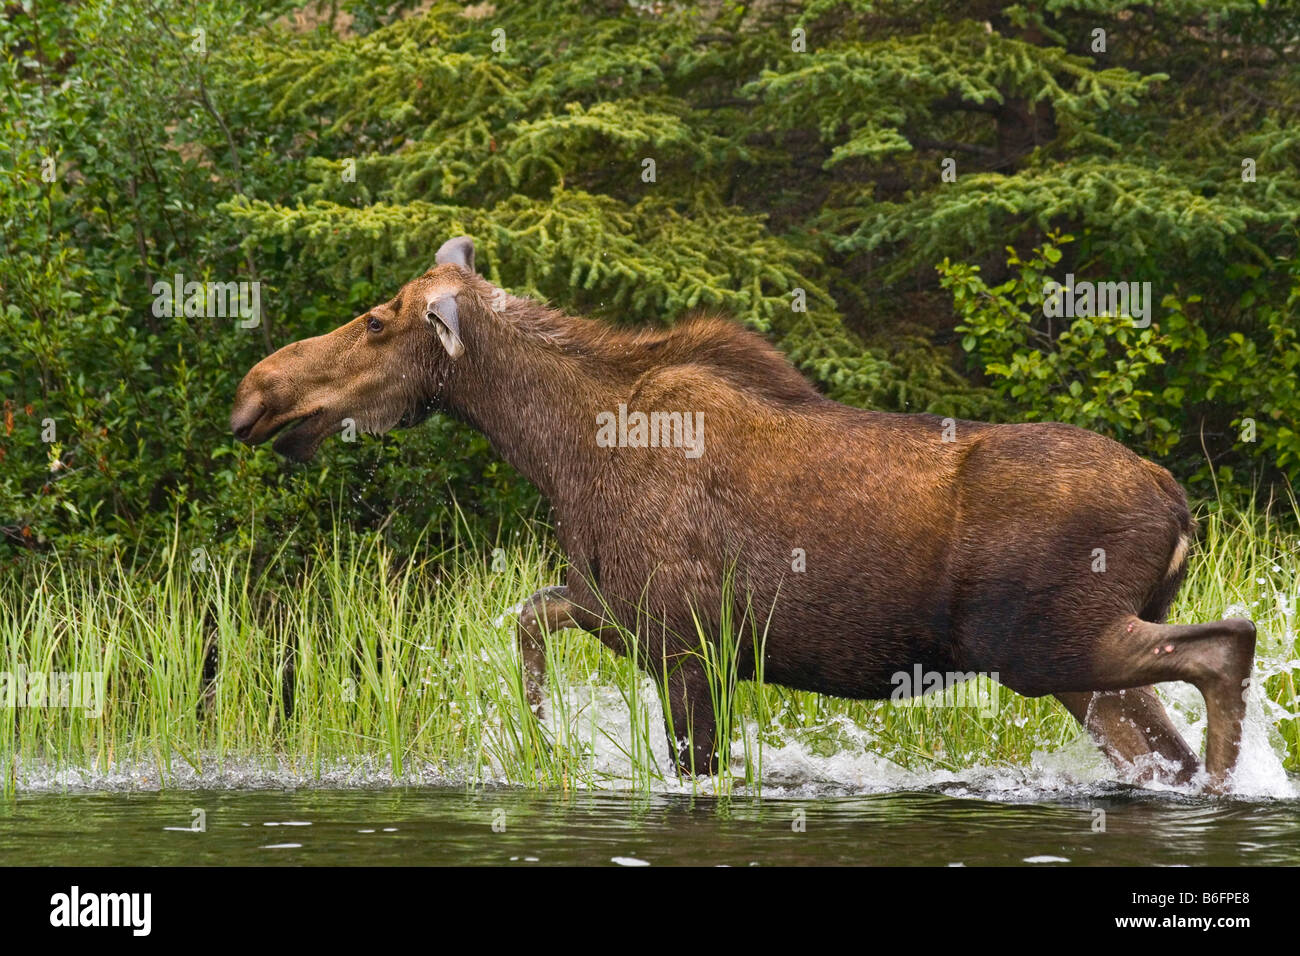 Cow Moose (Alces alces), running in shallow water, Big Salmon River, Yukon Territory, Canada, North America - Stock Image